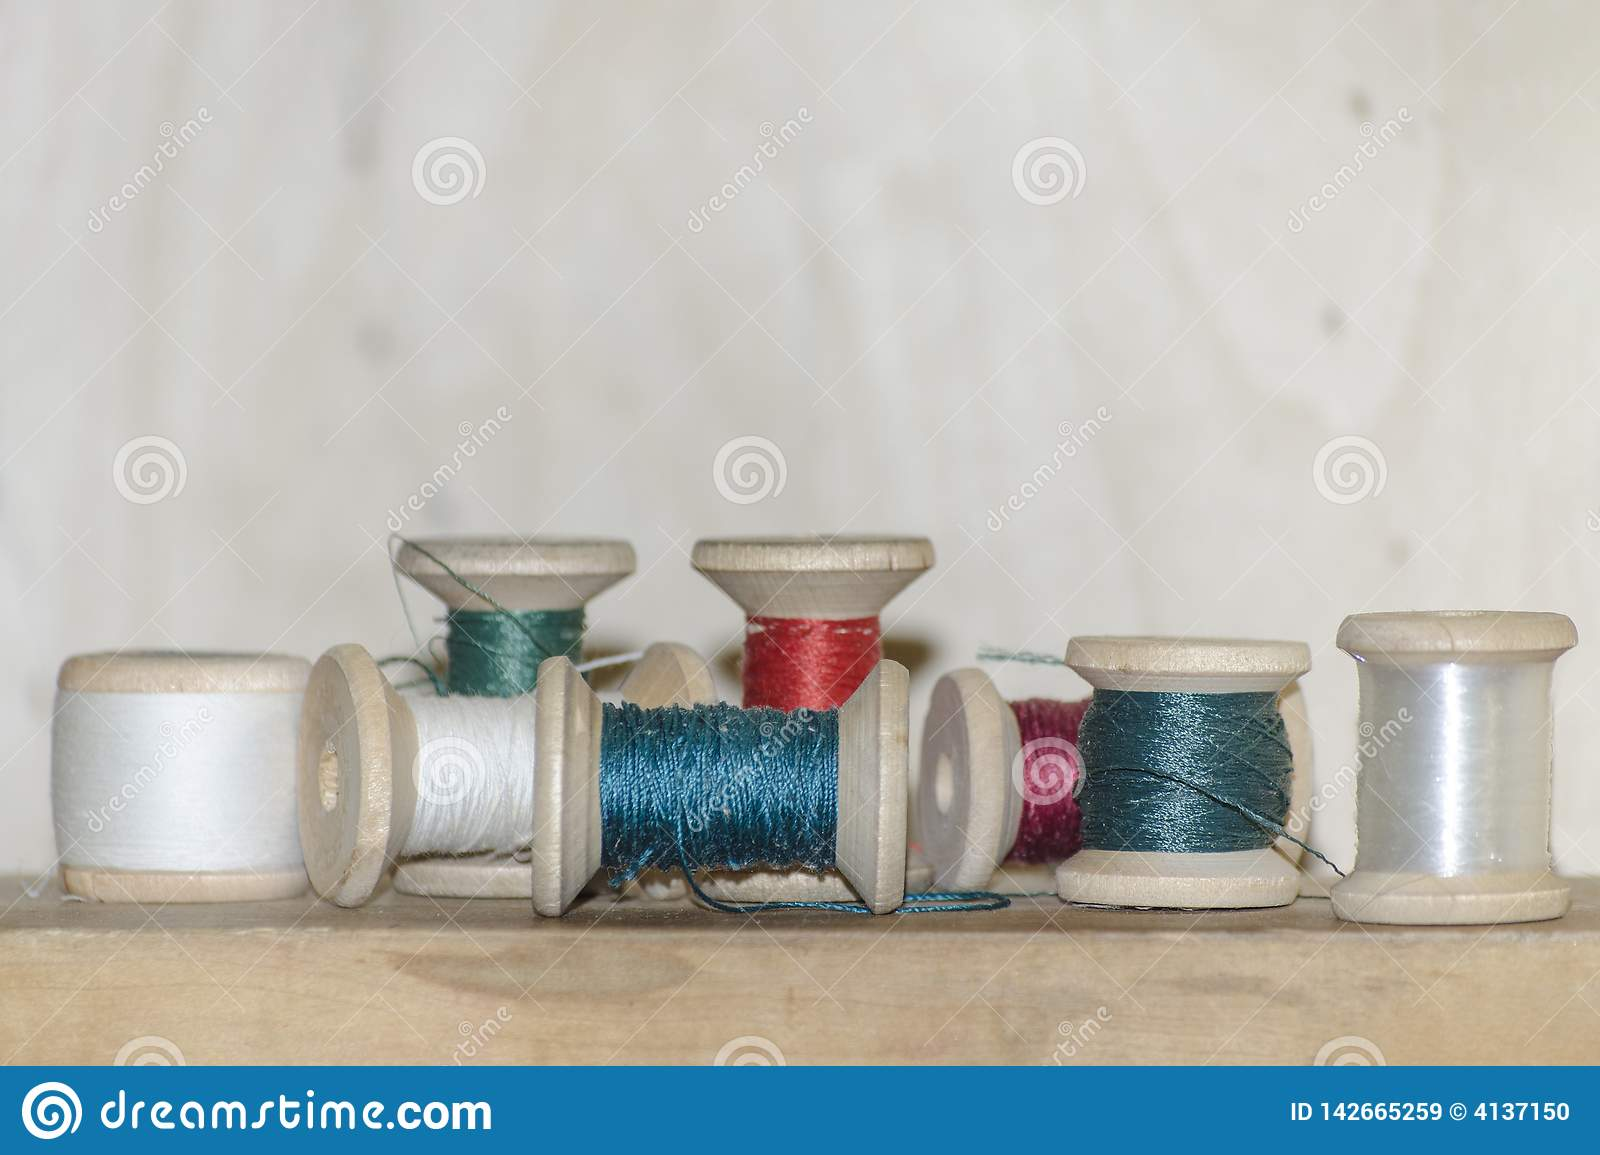 Spools of colored thread